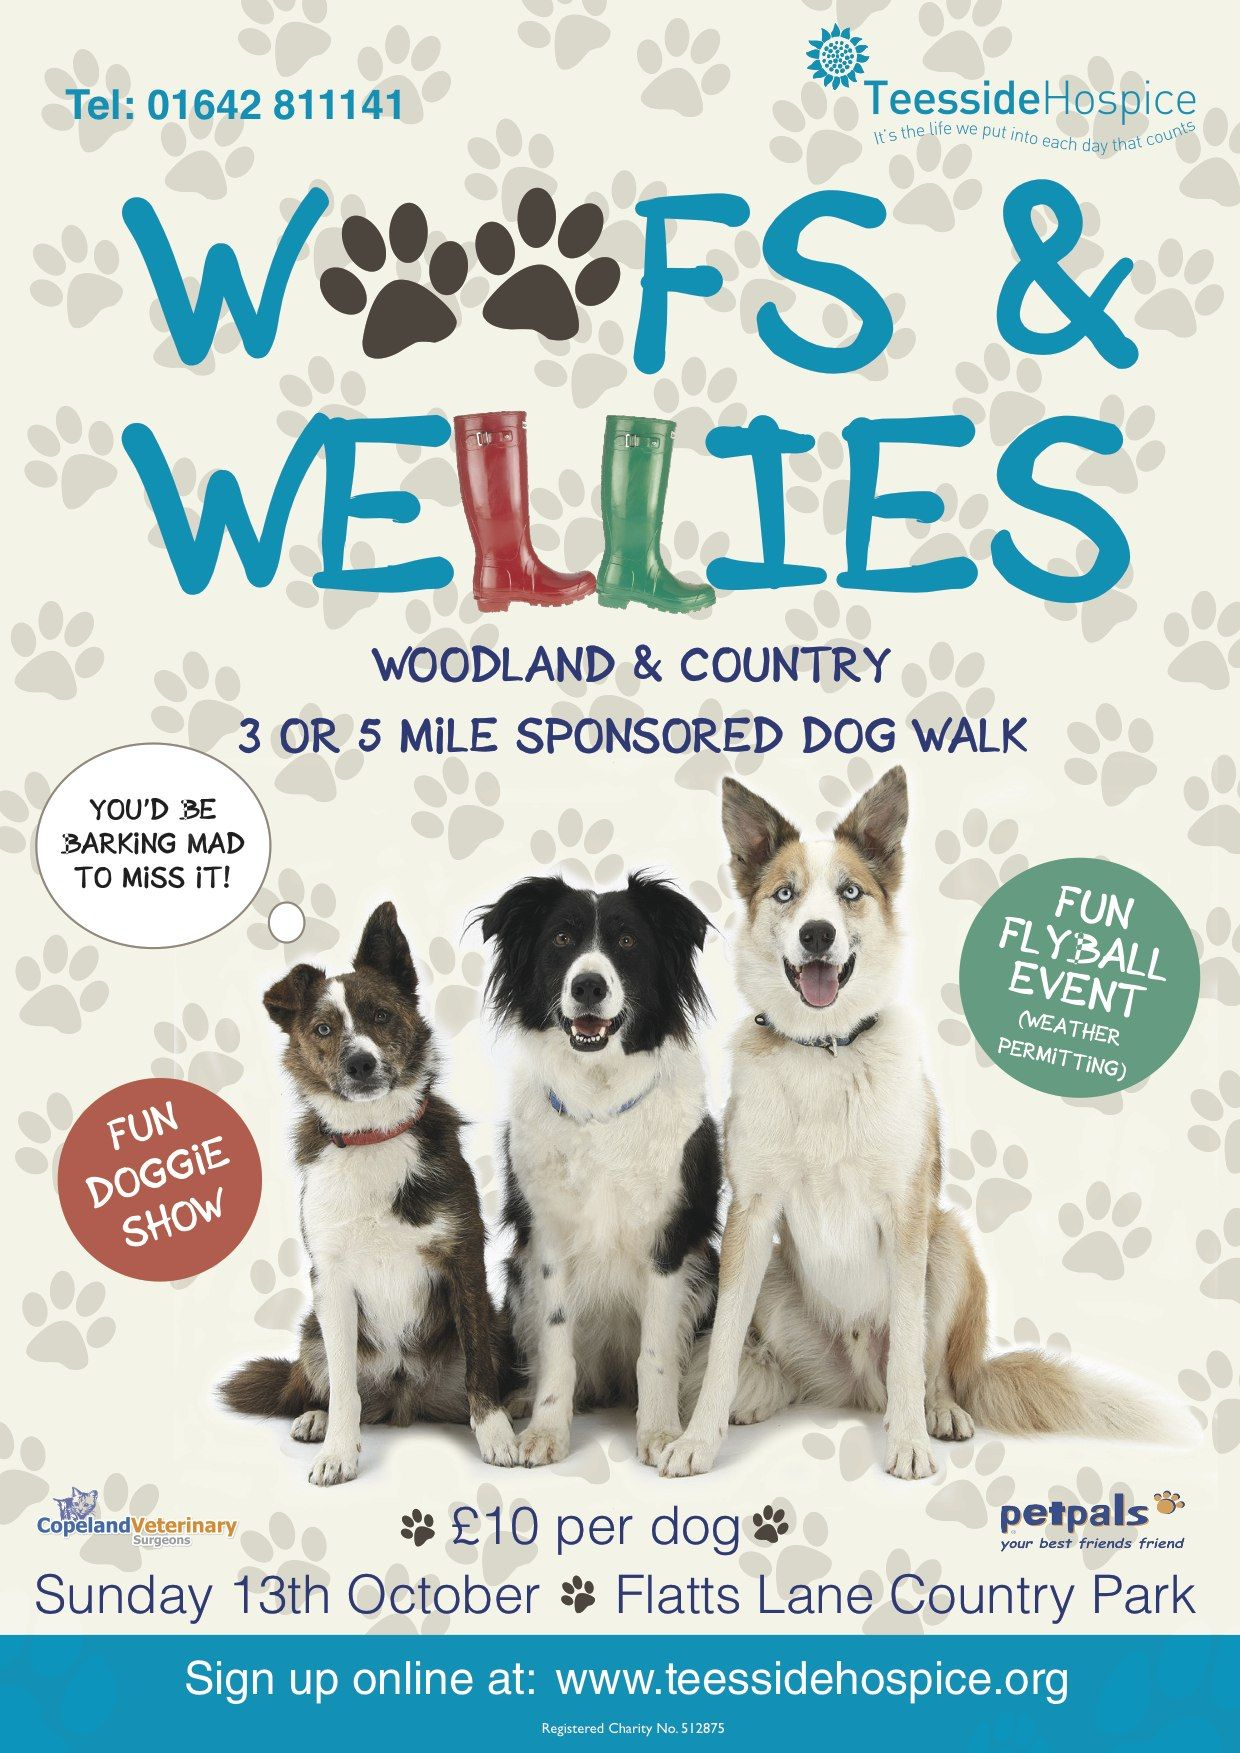 Woofs And Wellies Sponsored Dog Walk Charity Event For